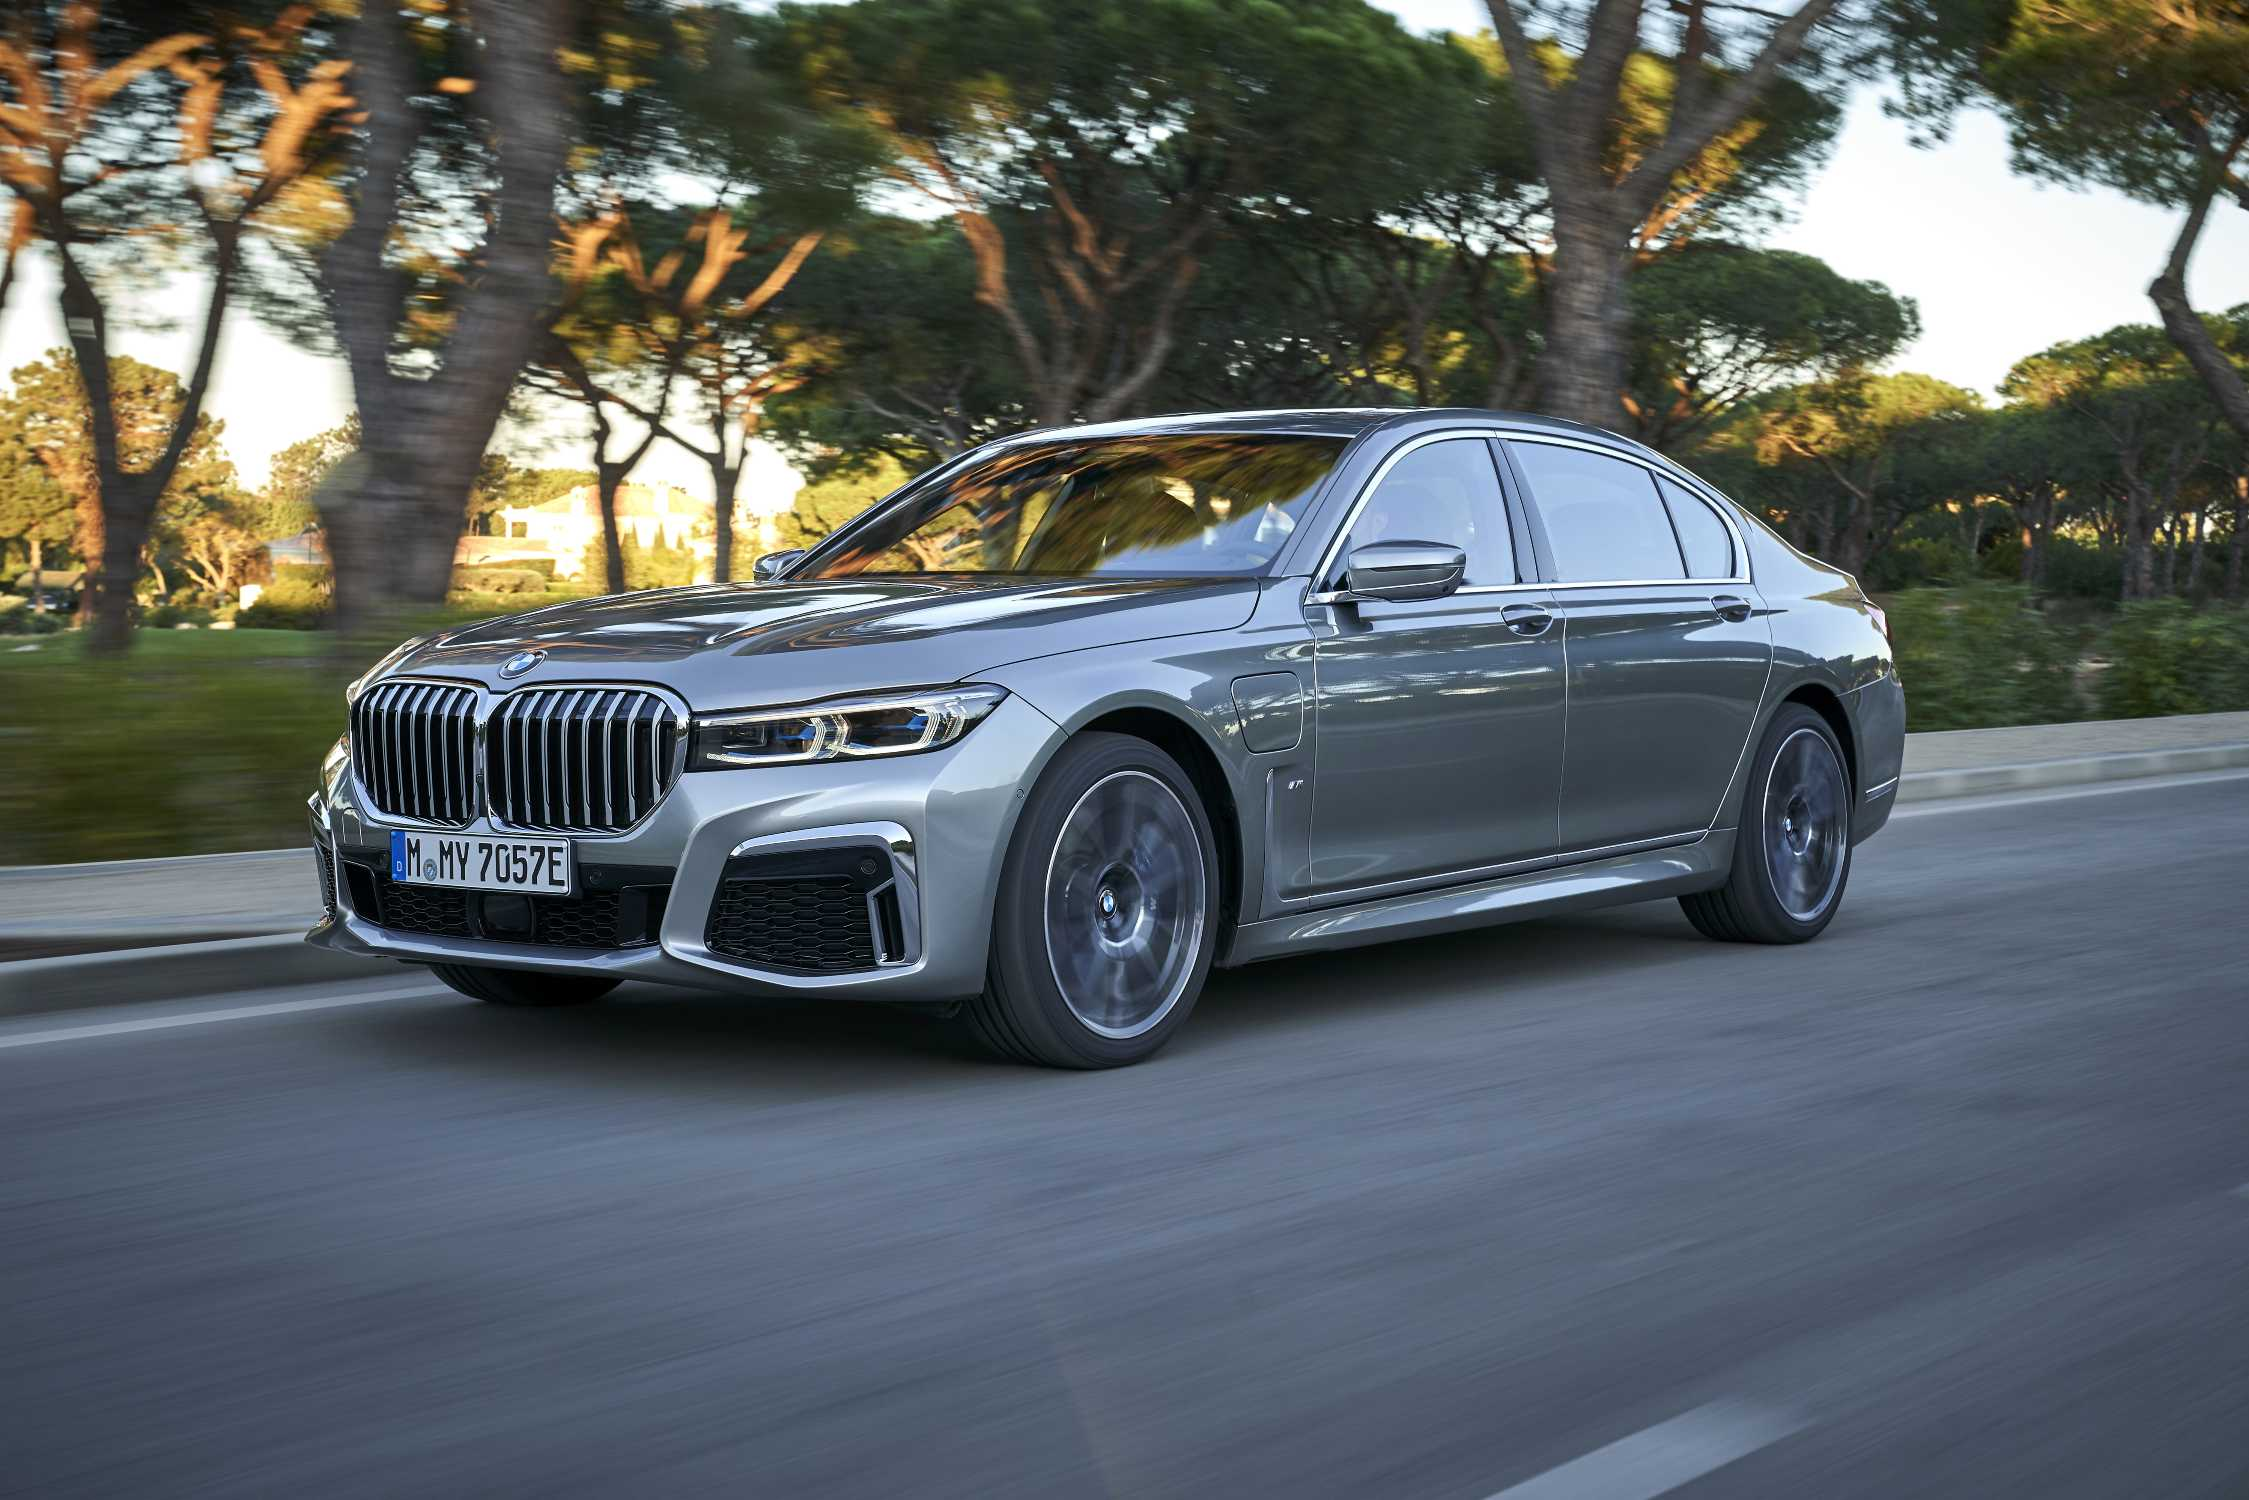 The New Bmw 745le Xdrive In Colour Donington Grey And 20